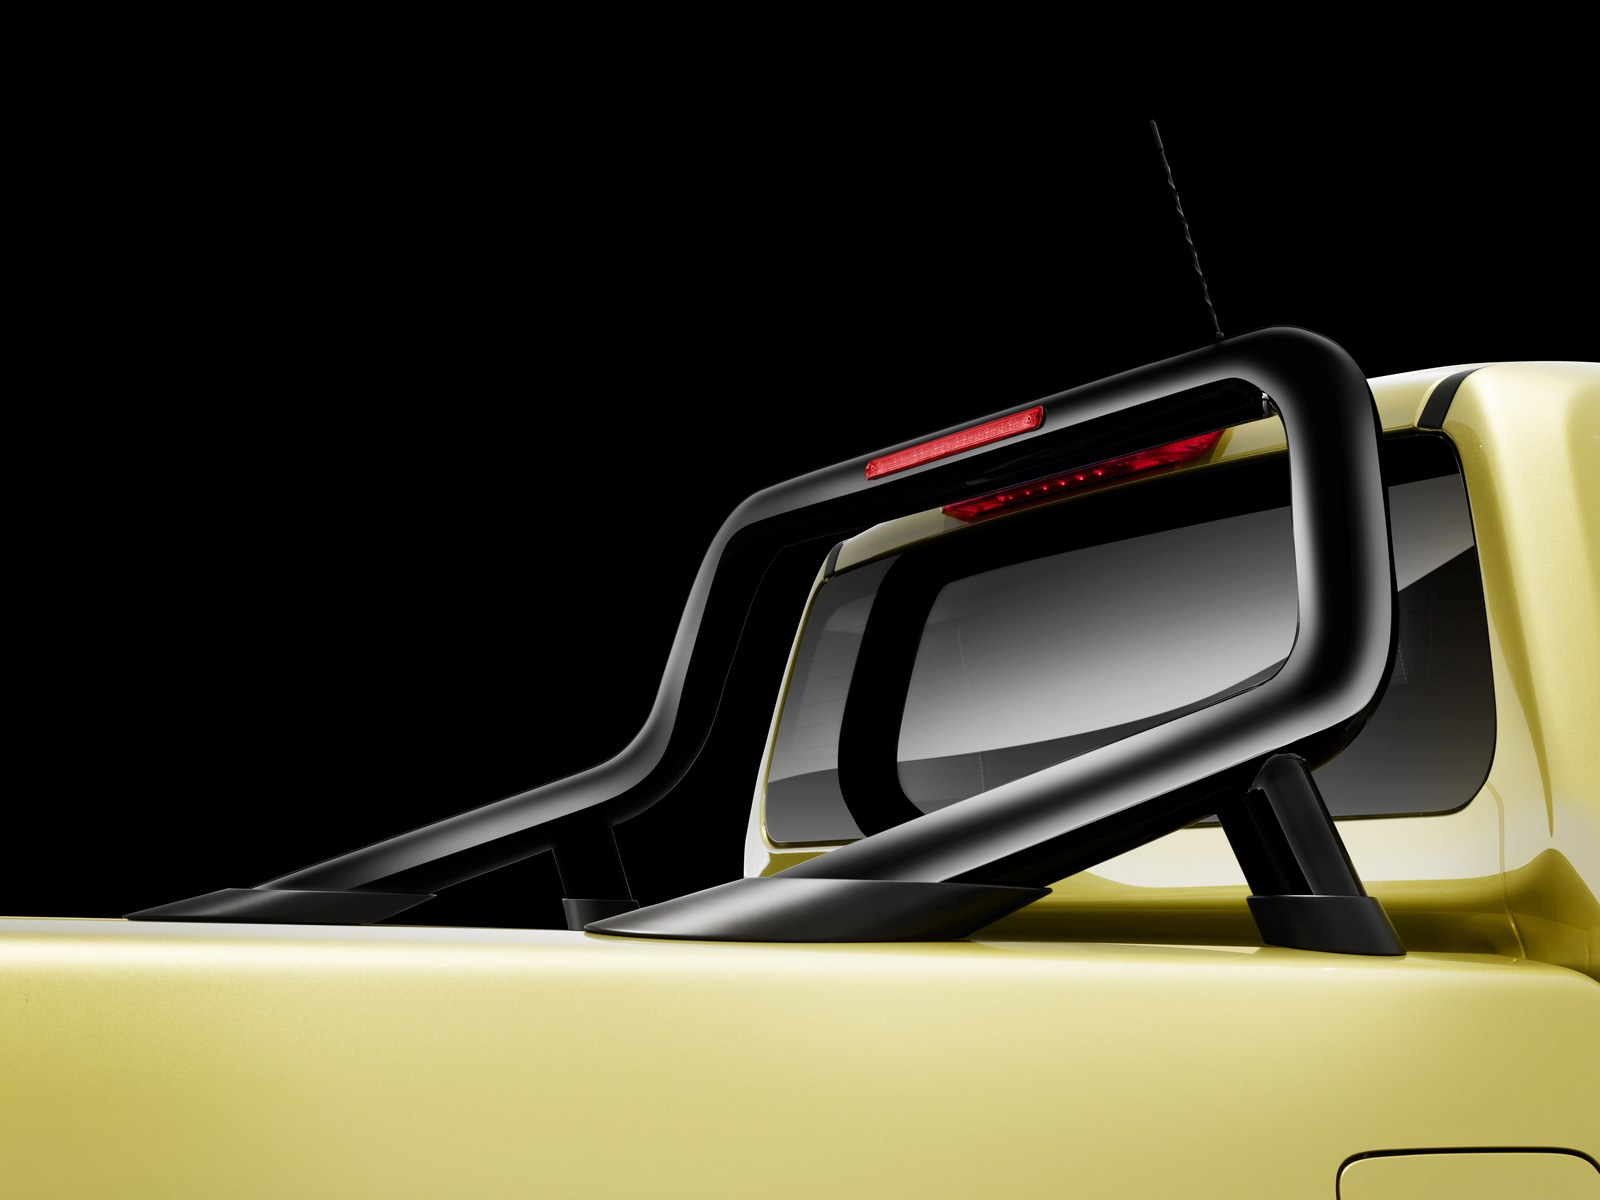 Mercedes-Benz X-Klasse – Styling Bar (Mercedes-Benz Zubehör) 